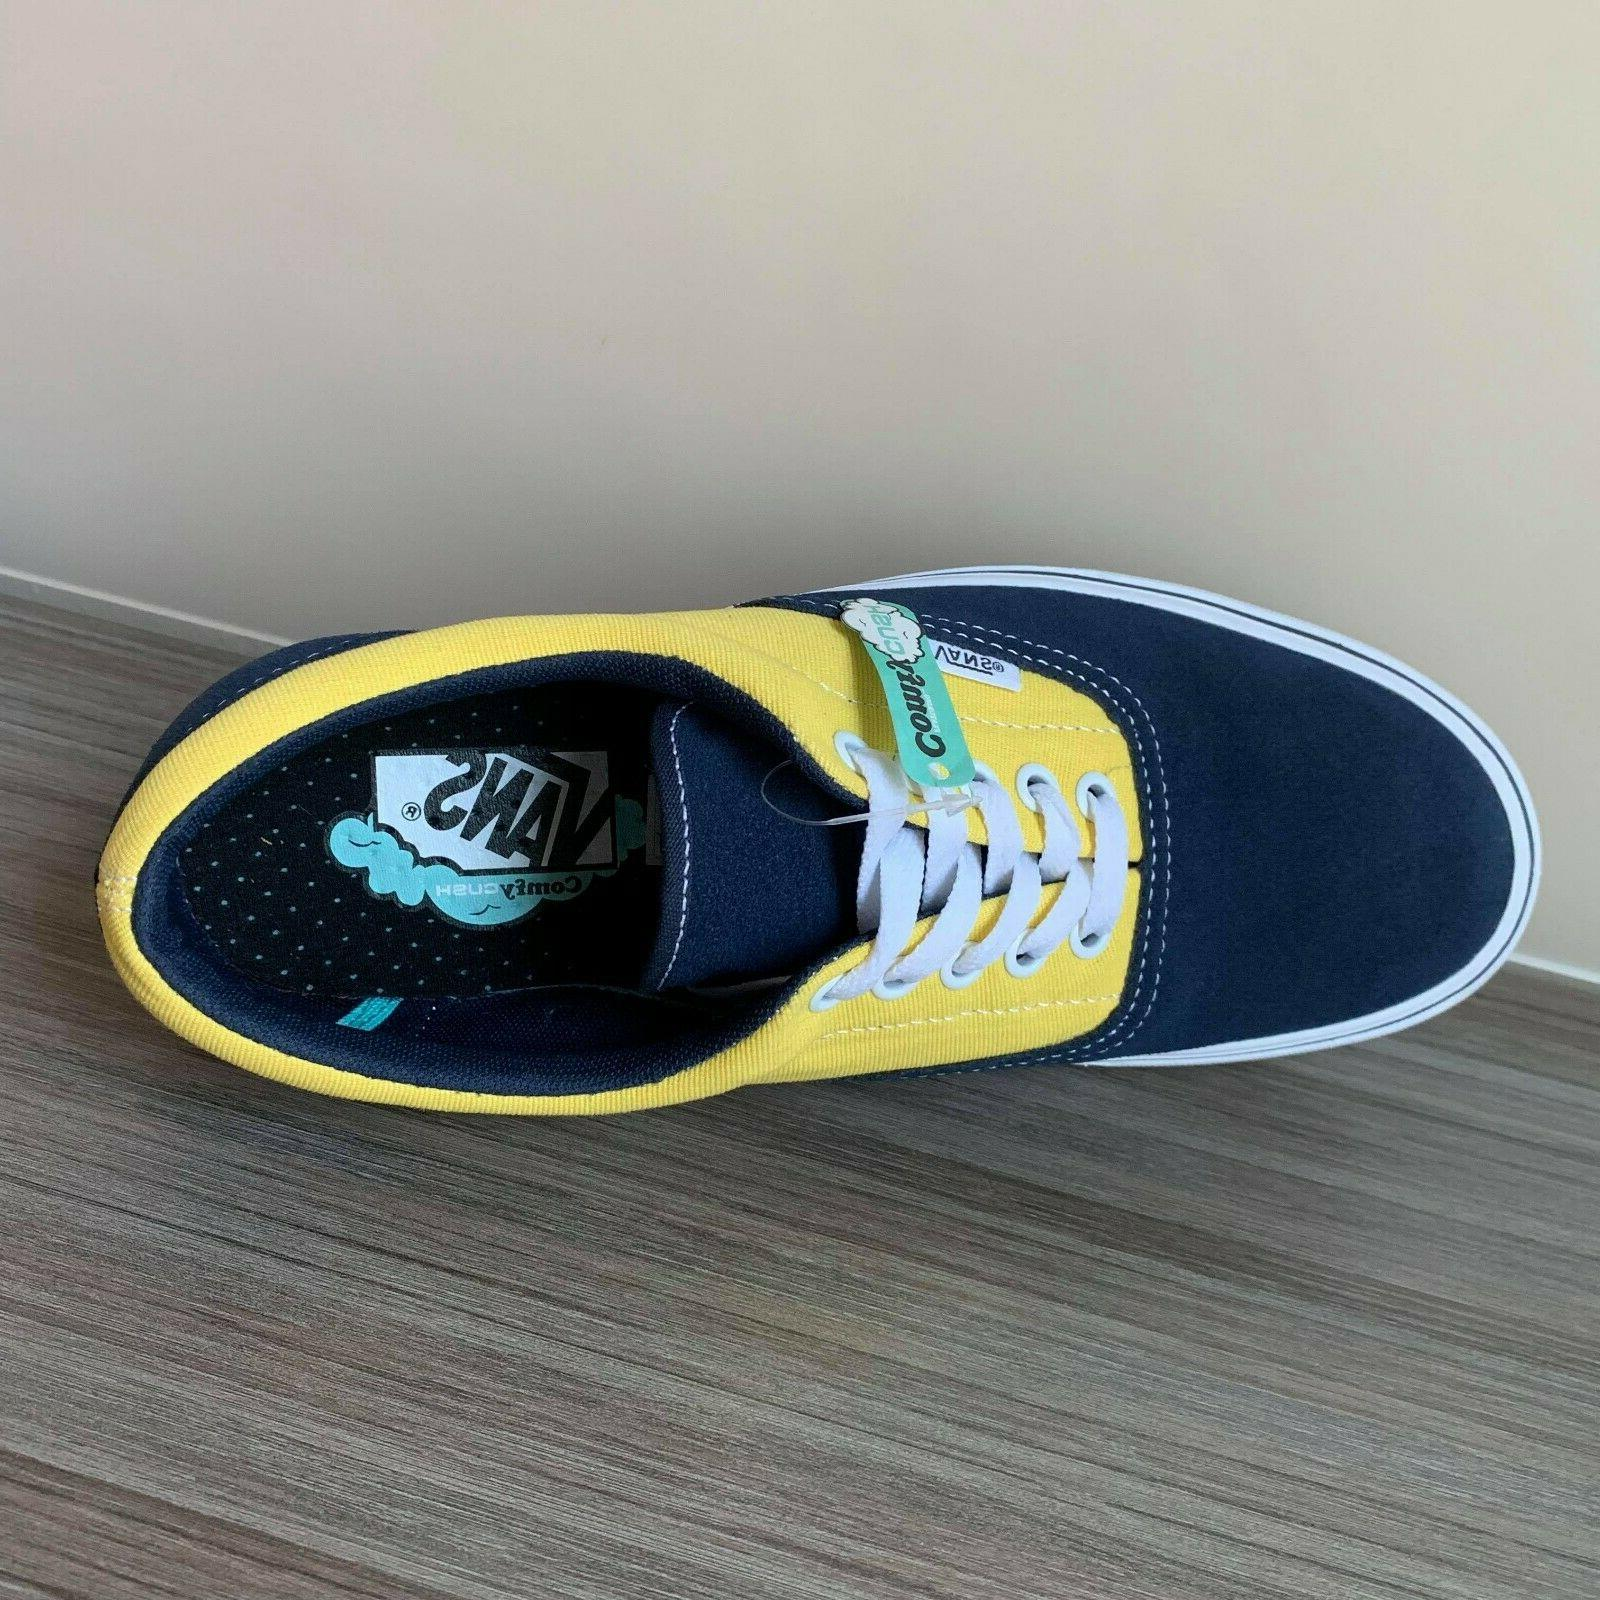 VANS COMFYCUSH SKATE SHOES DRESS BLUE